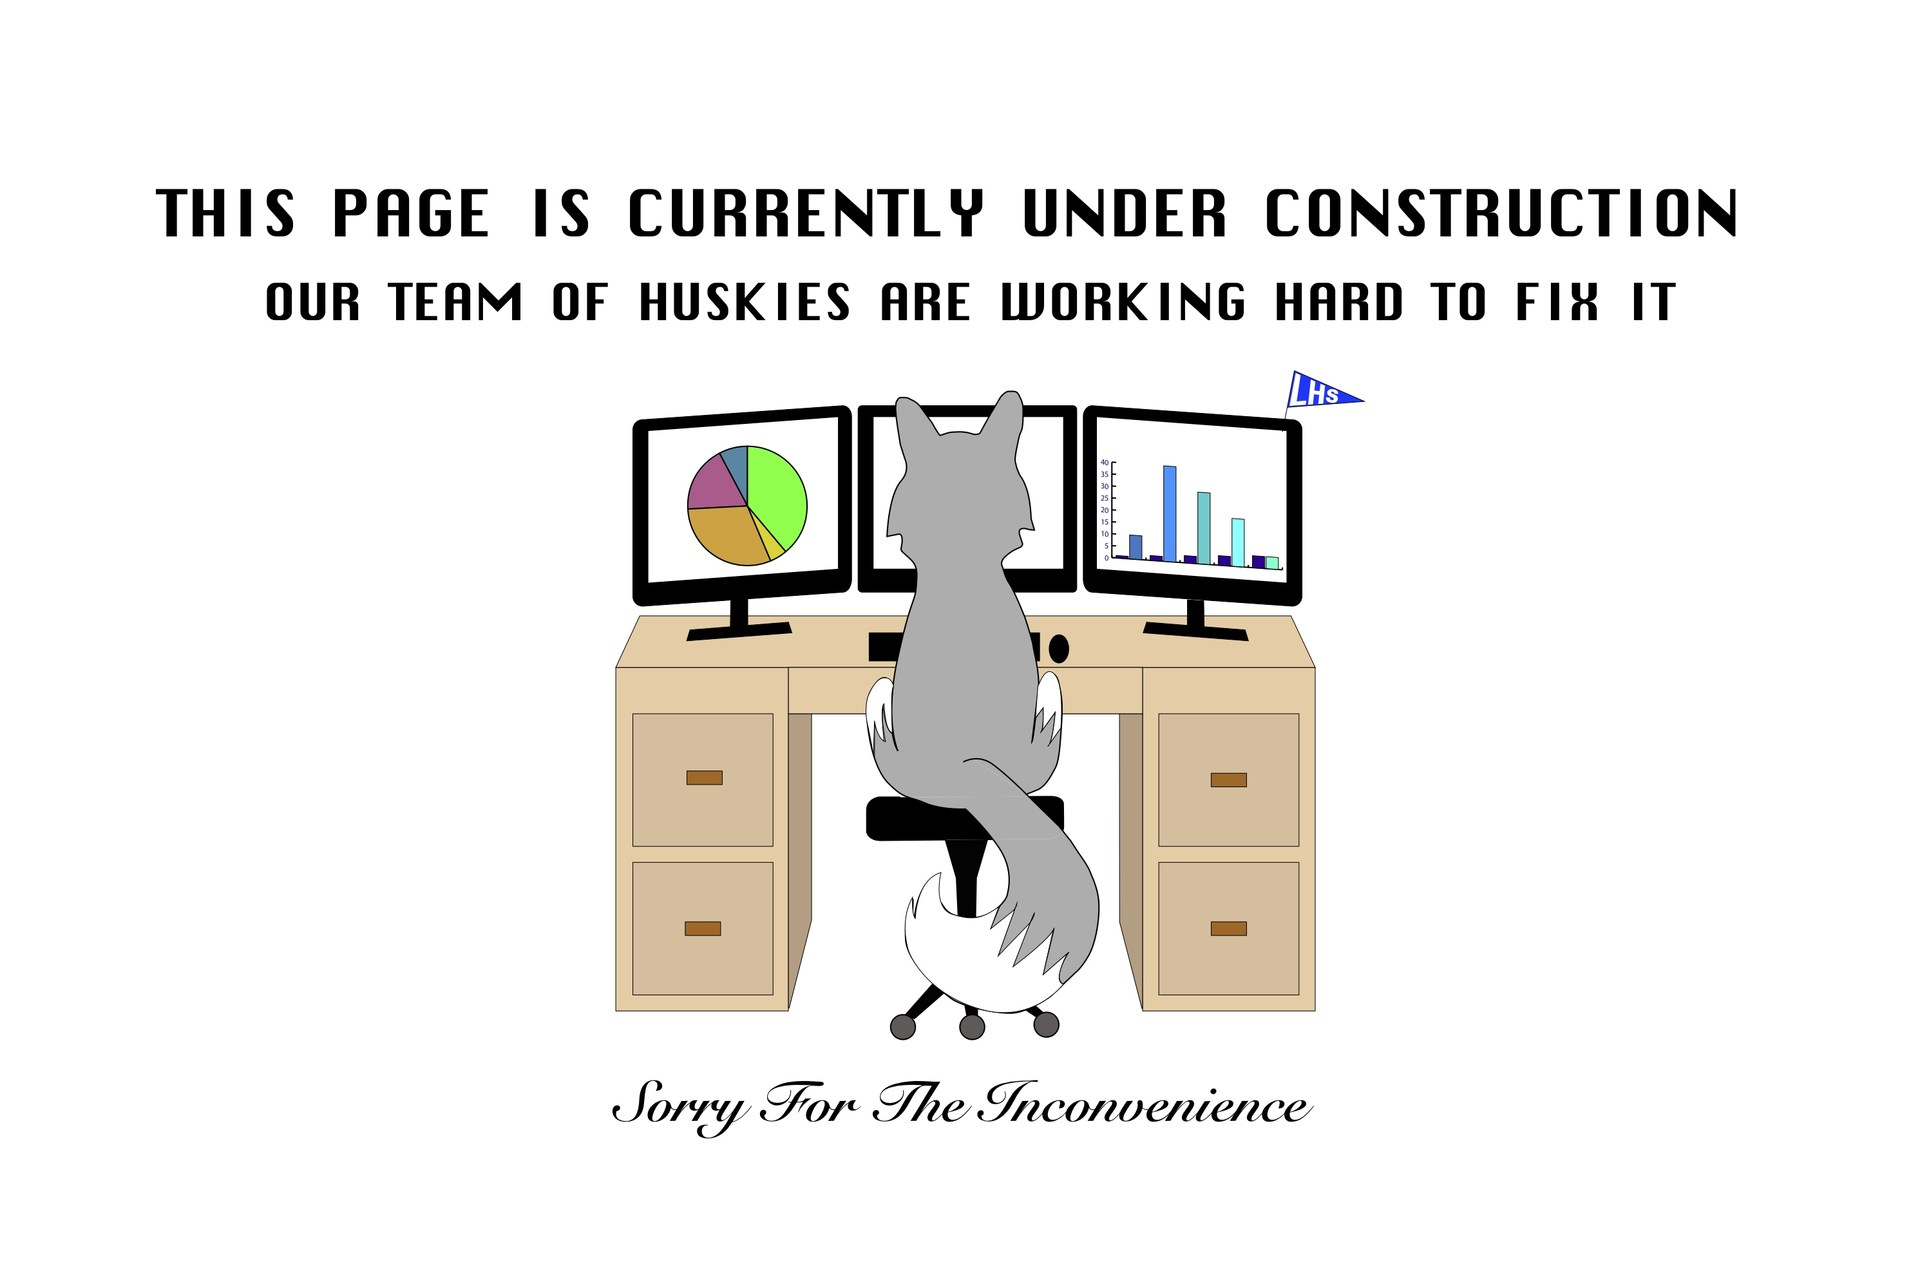 Page 'Under Construction' Placeholder